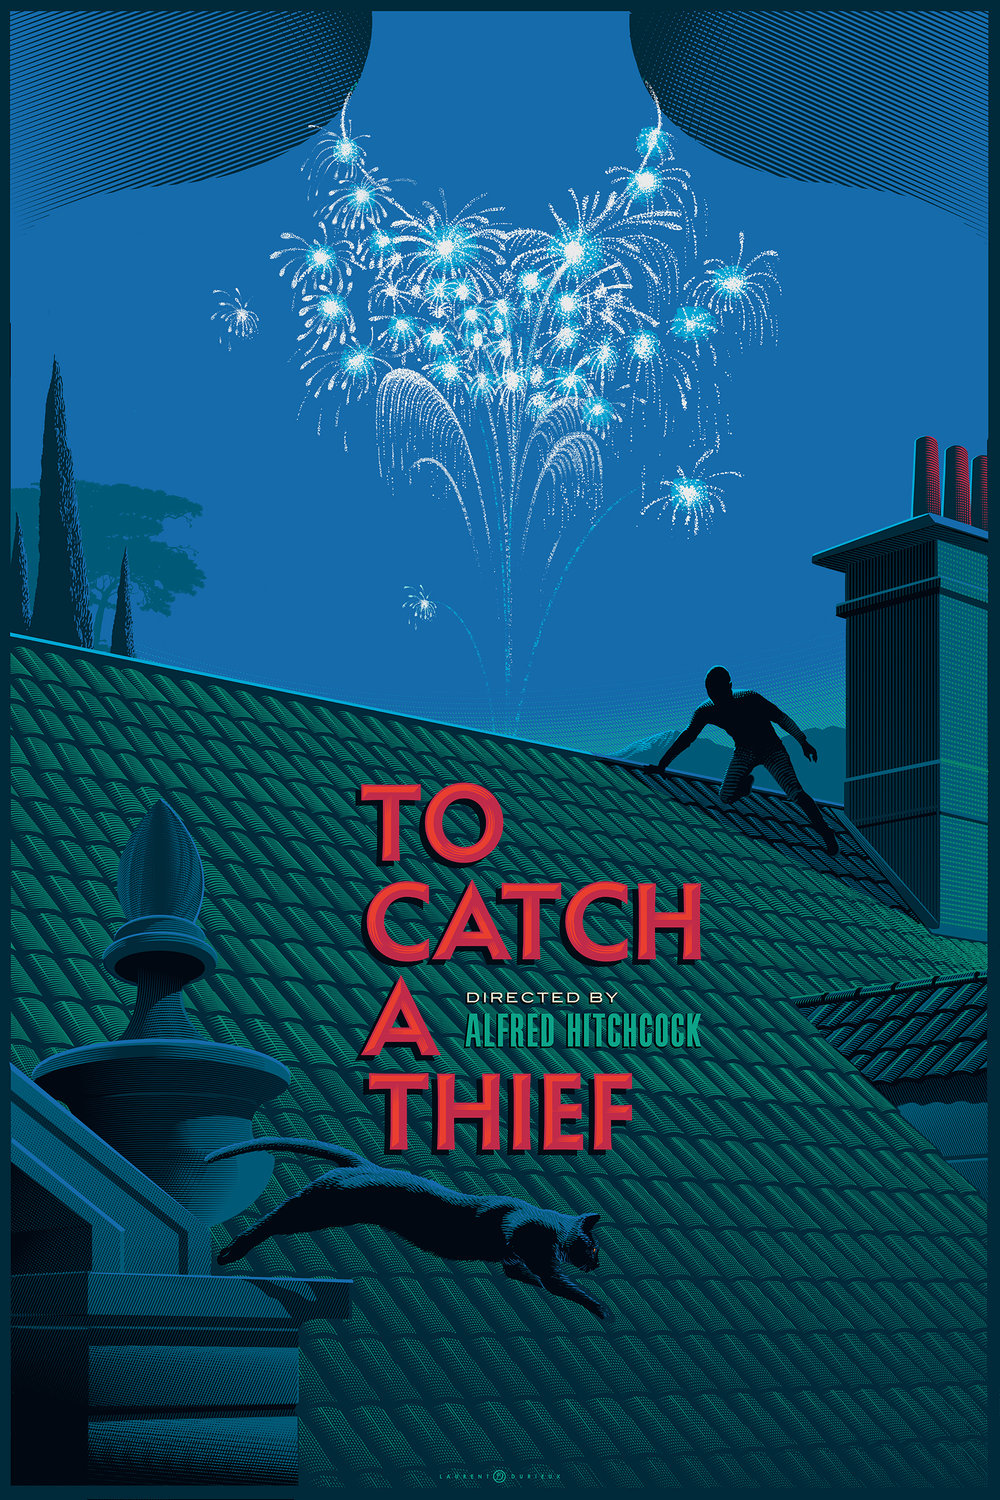 To Catch a Thief(1955, dir. Alfred Hitchcock) poster by Laurent Durieux, 2016